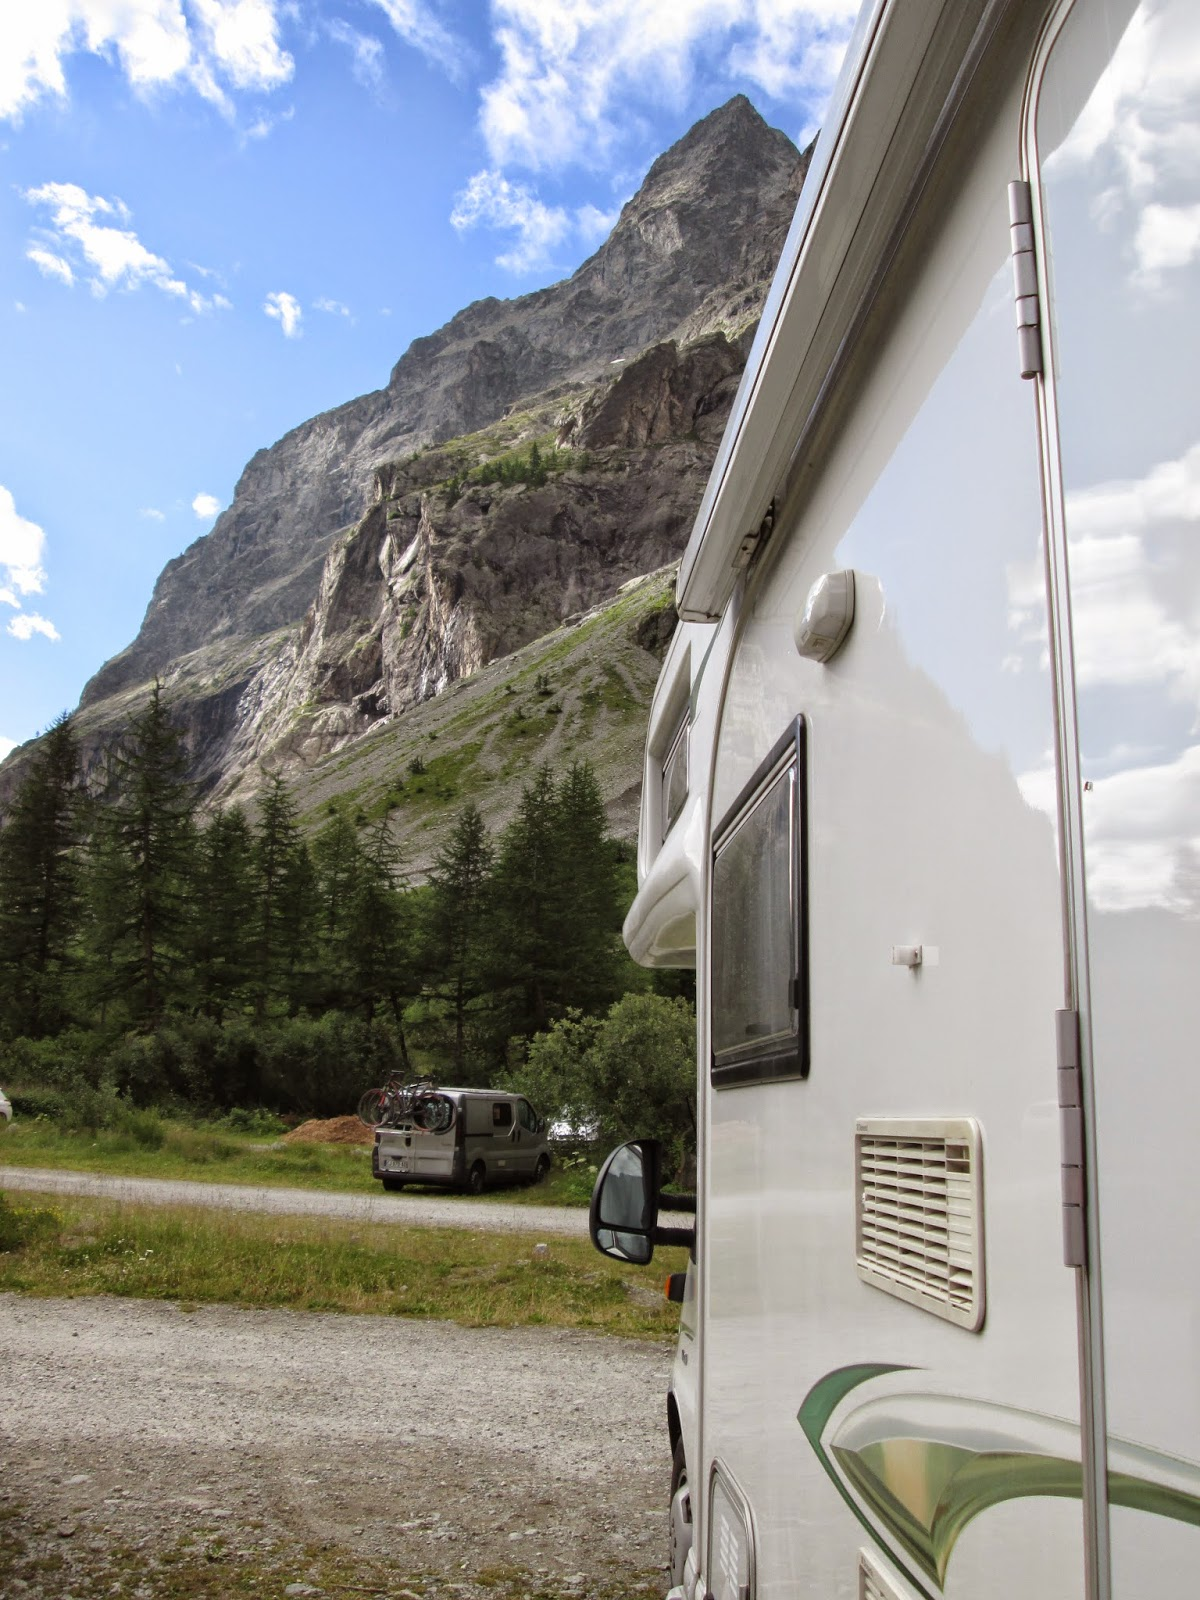 Motorhome in Ecrins National Park, France, Alps